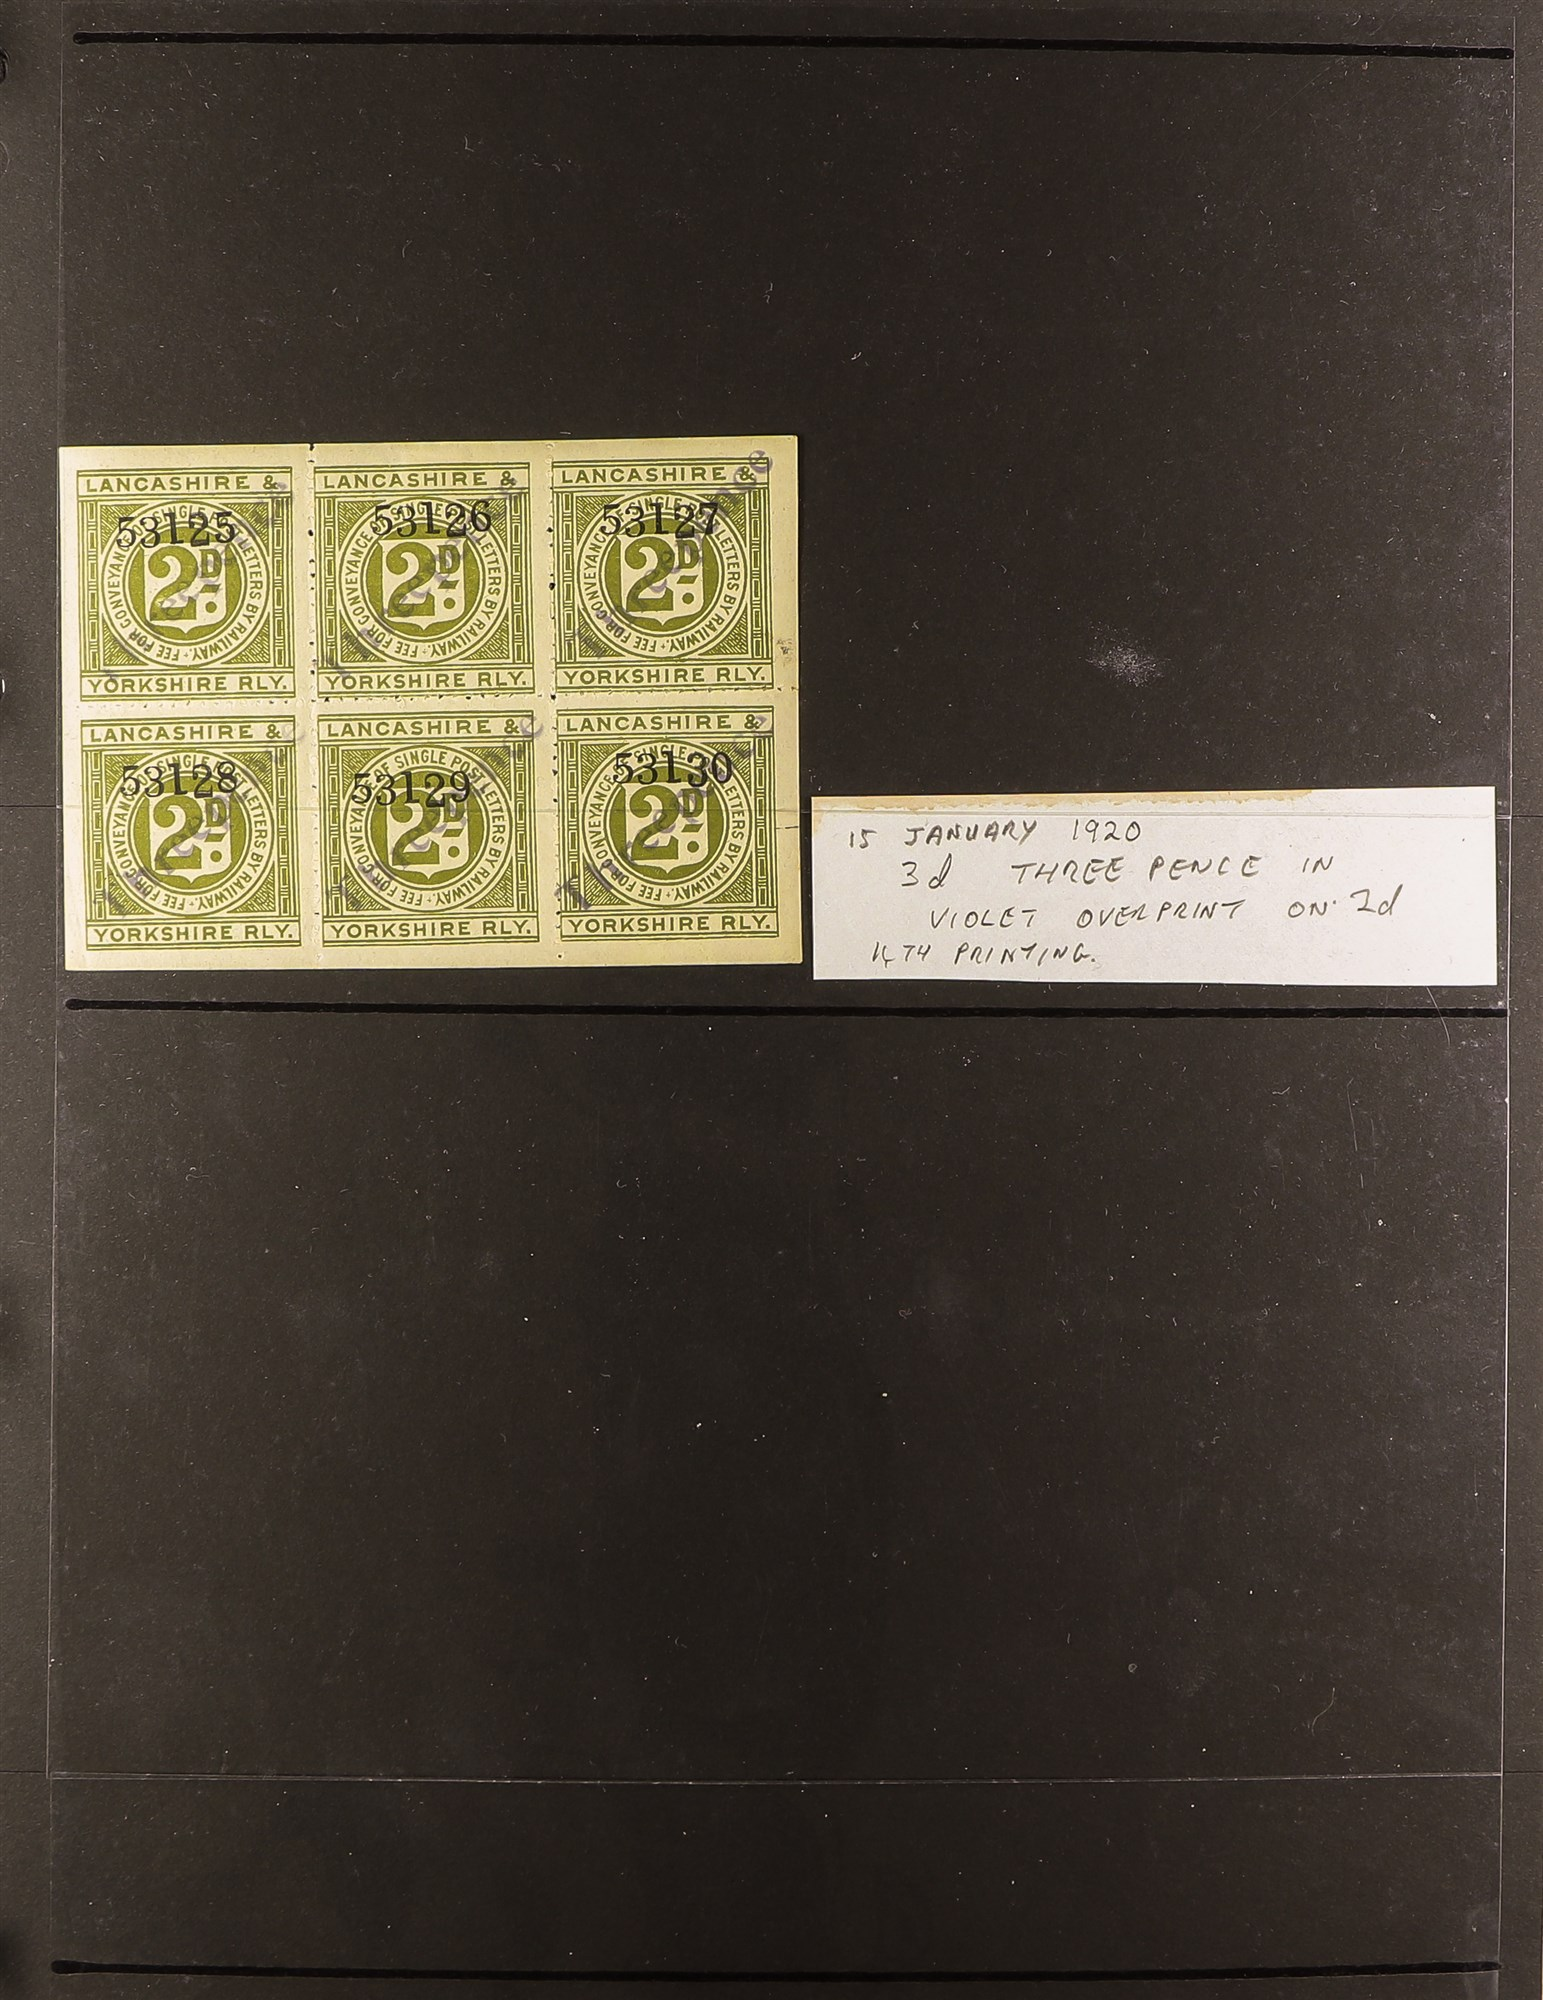 GREAT BRITAIN RAILWAY LETTER AND NEWSPAPER STAMPS 1890's-1940's COLLECTION in two albums, mint and - Image 8 of 24